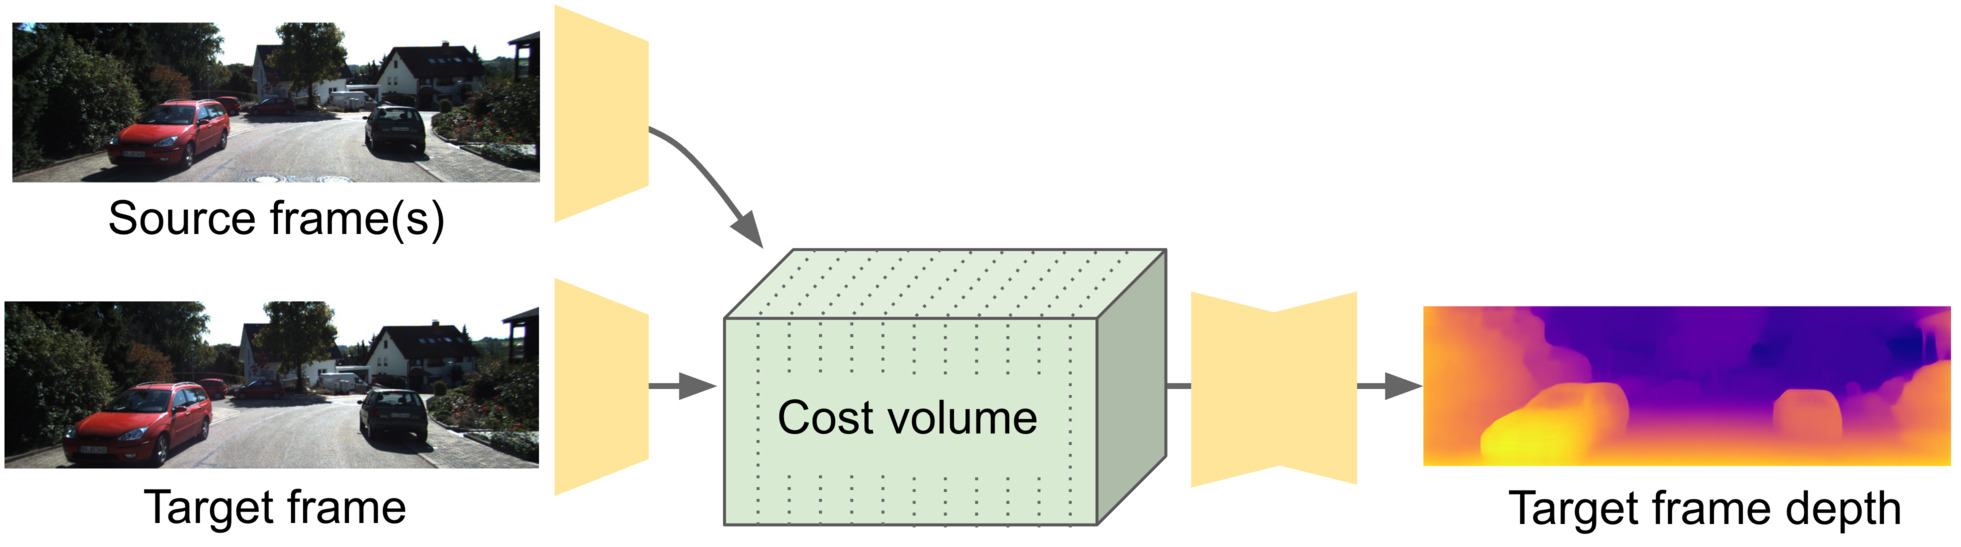 Cost volume used for aggreagting sequences of frames